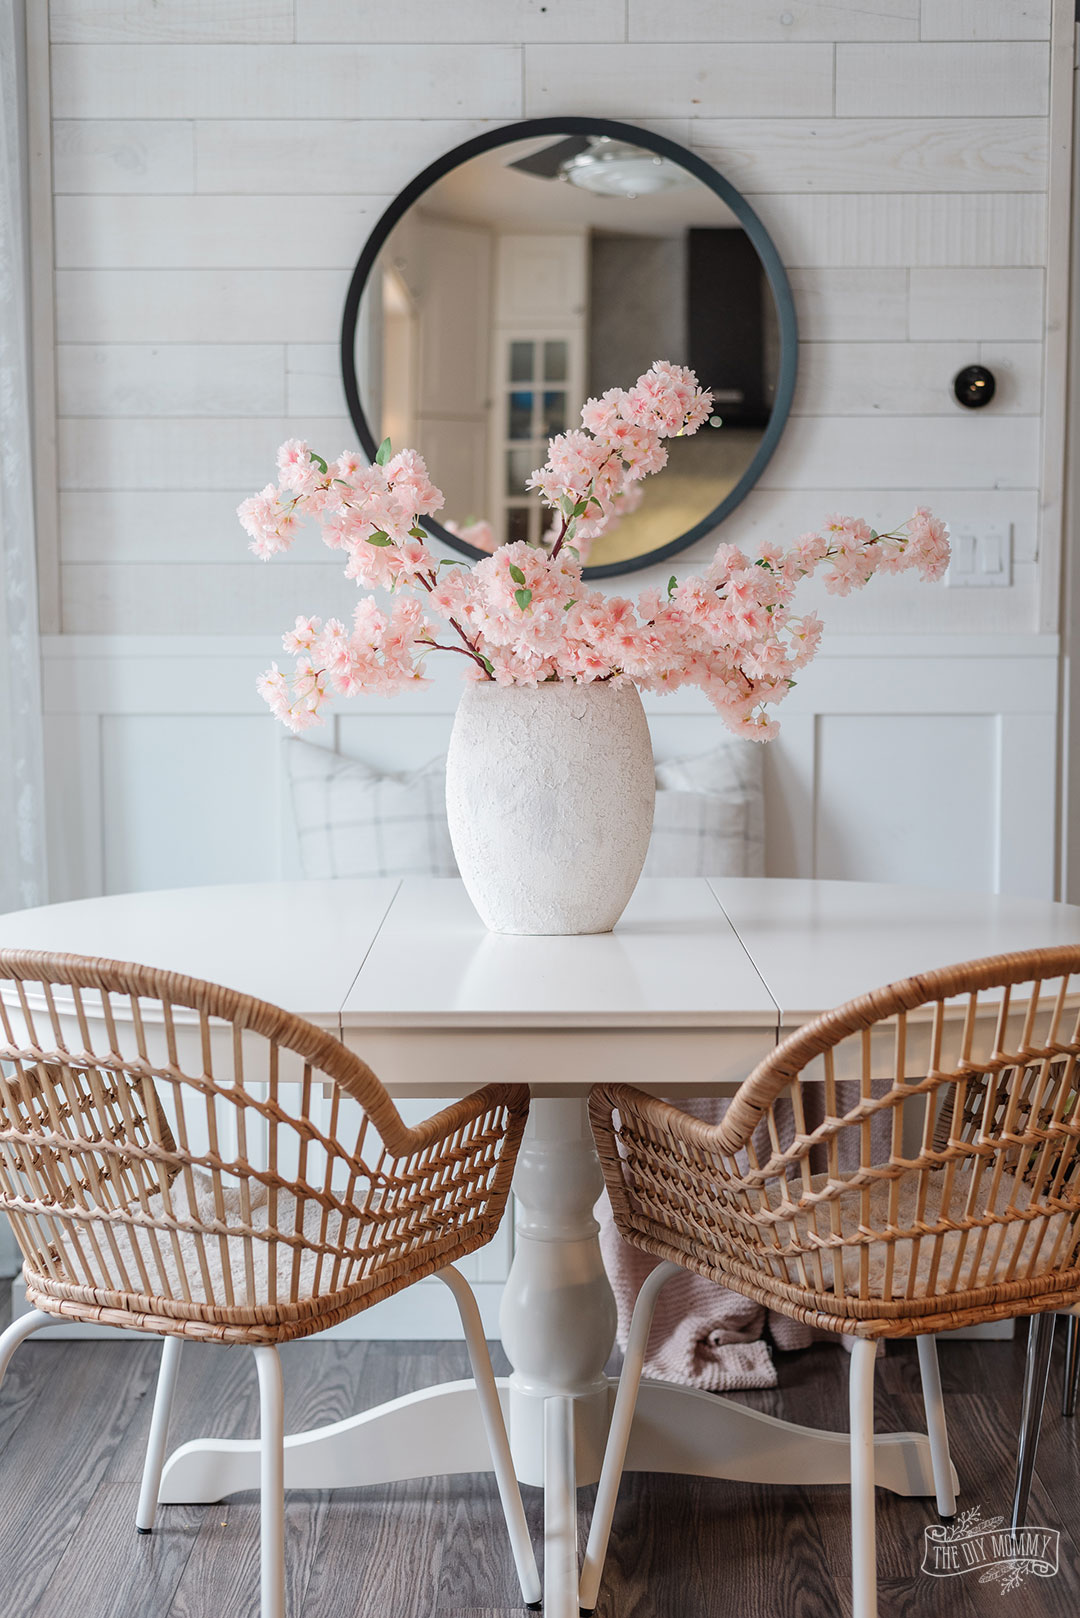 Textured Vase with DIY Plaster Paint